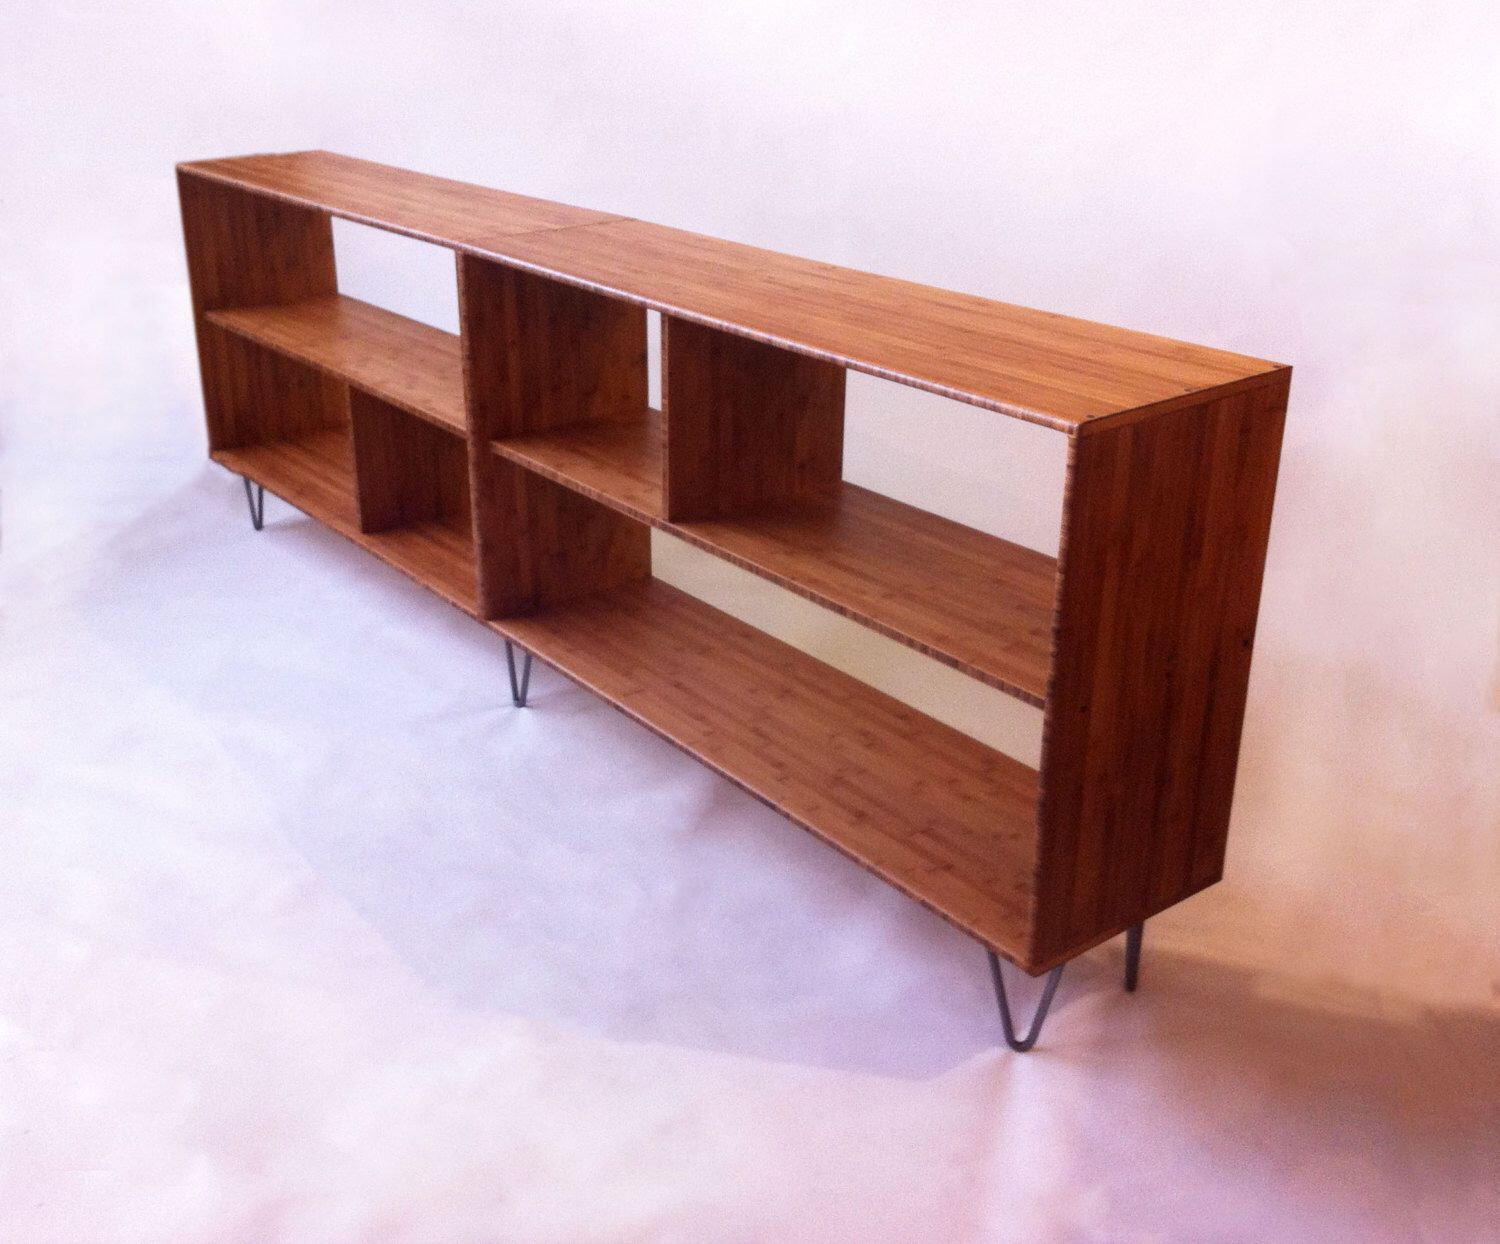 Mid Century Modern Style Bookcase   Record Shelf   Entry Way Table With  Shelves   Solid